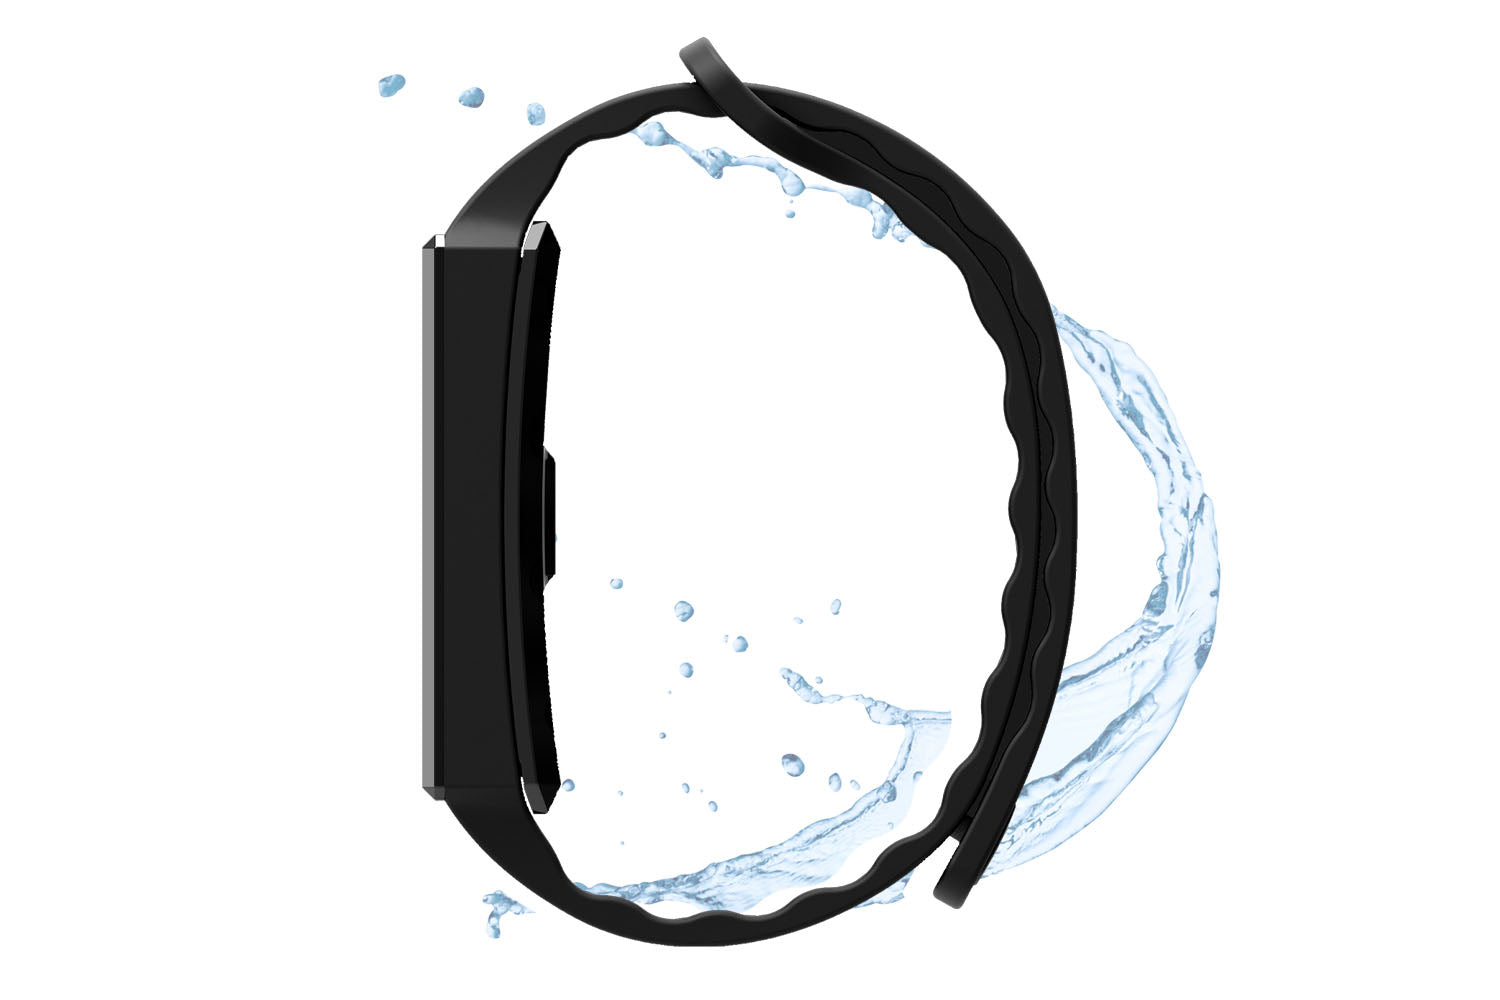 omniband-hrwater-proof